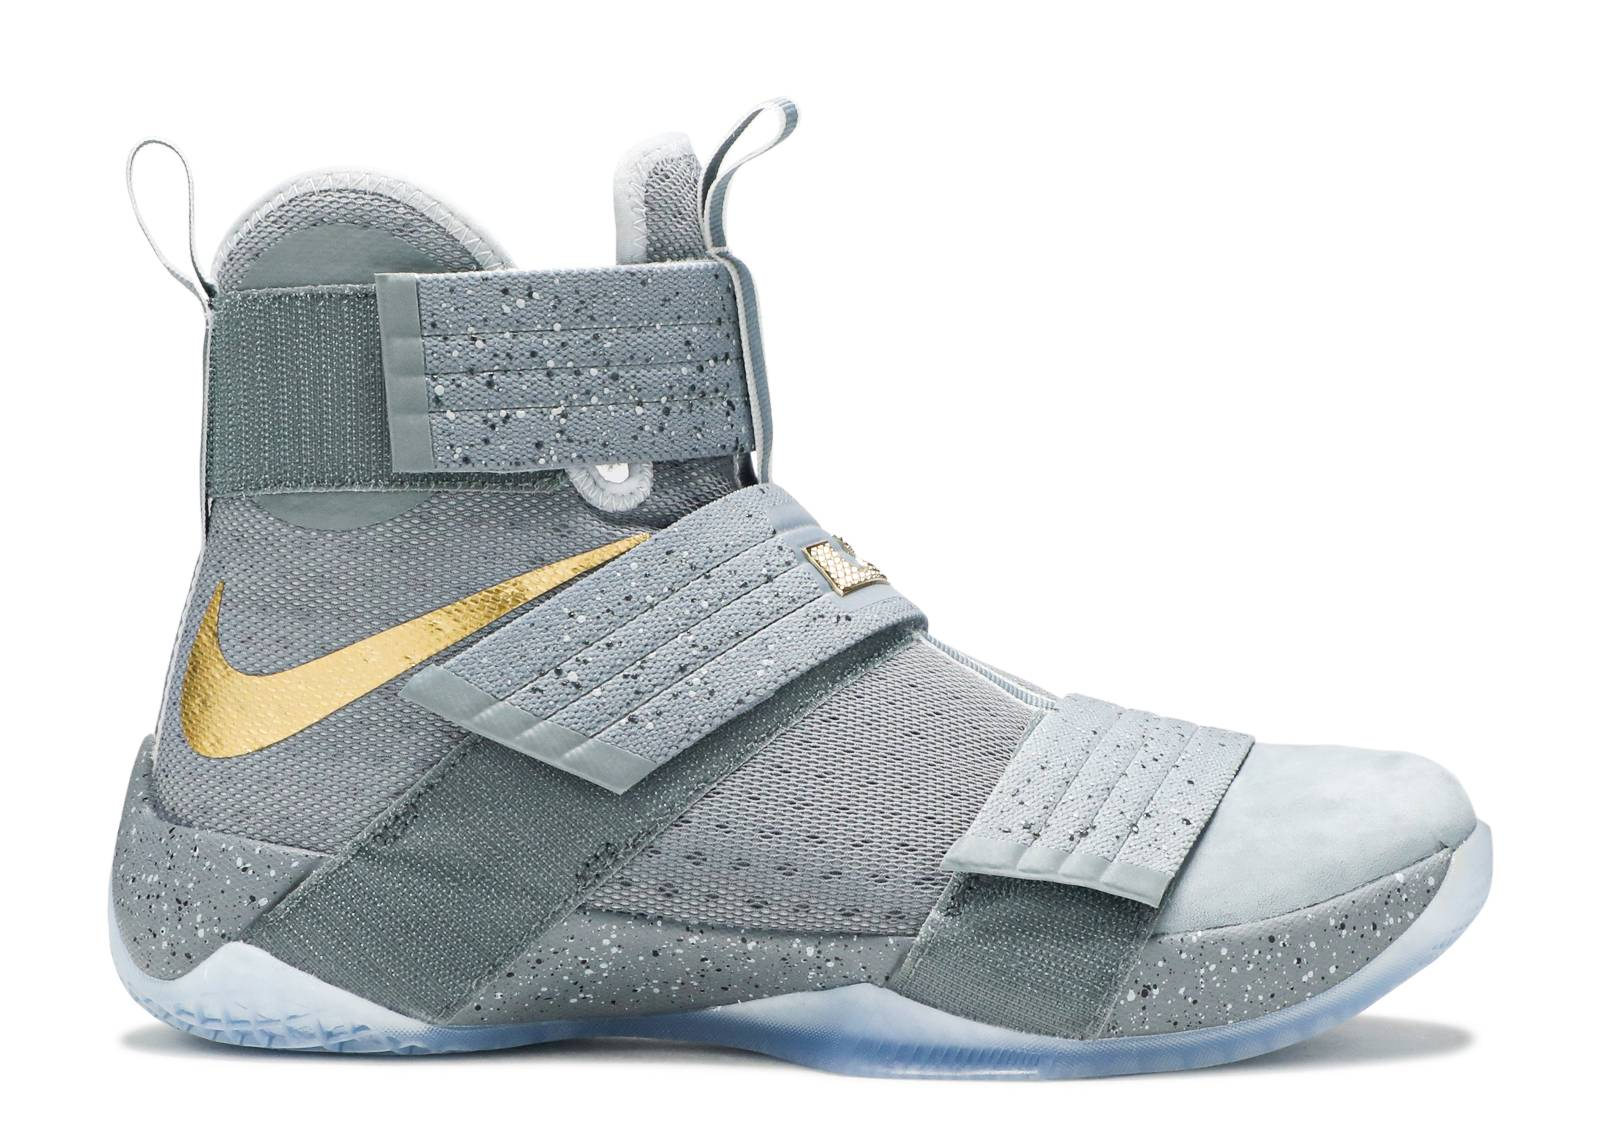 low priced 99db5 43239 ebay nike lebron soldier 10 cool grey 952fe 26e84  uk nike. lebron soldier  10 sfg pe acce8 80942